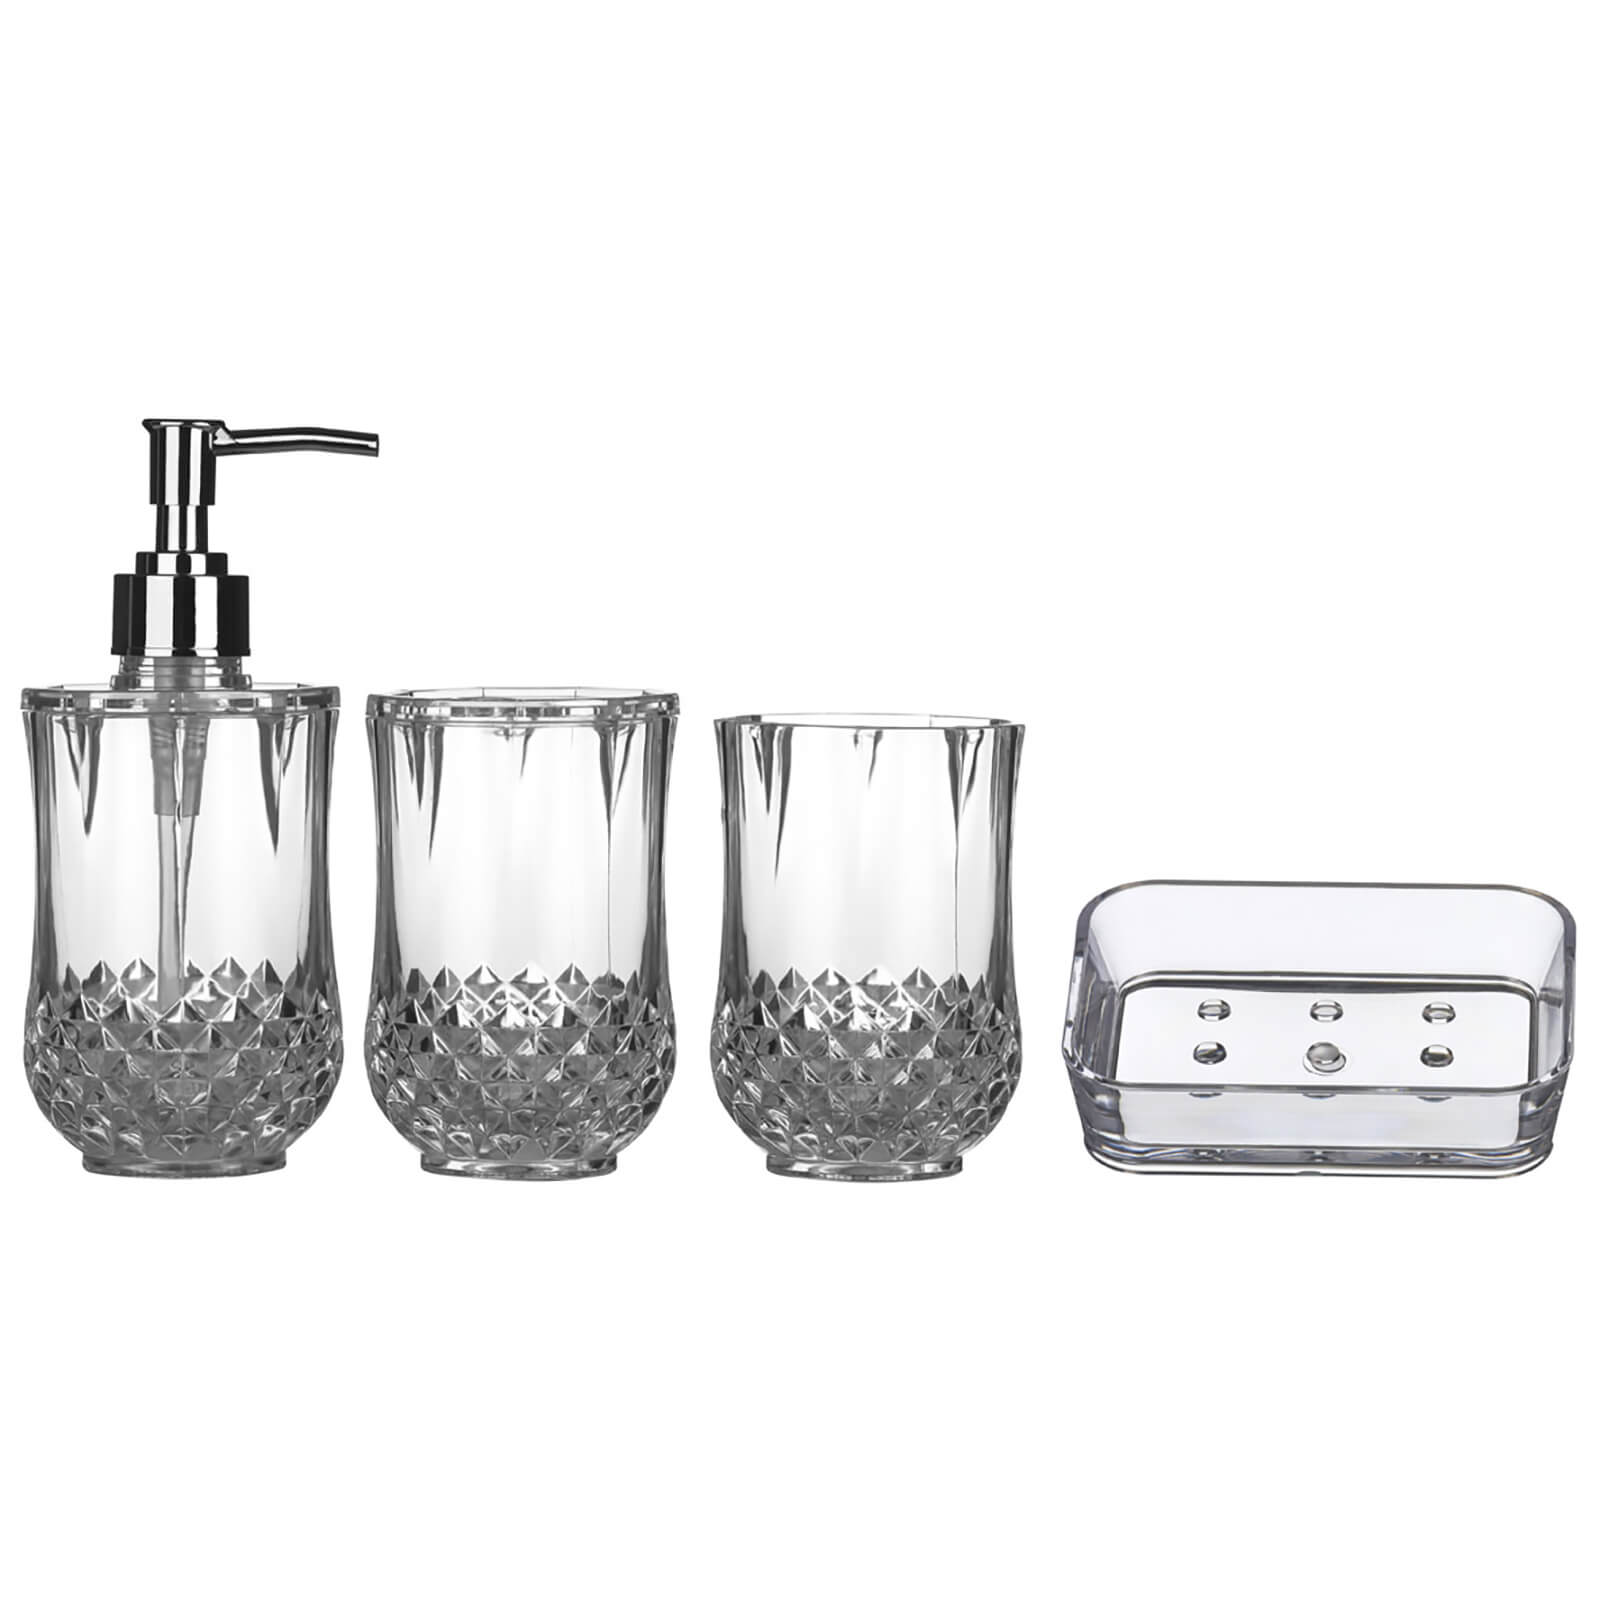 Fifty Five South Cristallo Bathroom Set - Clear (Set of 4)